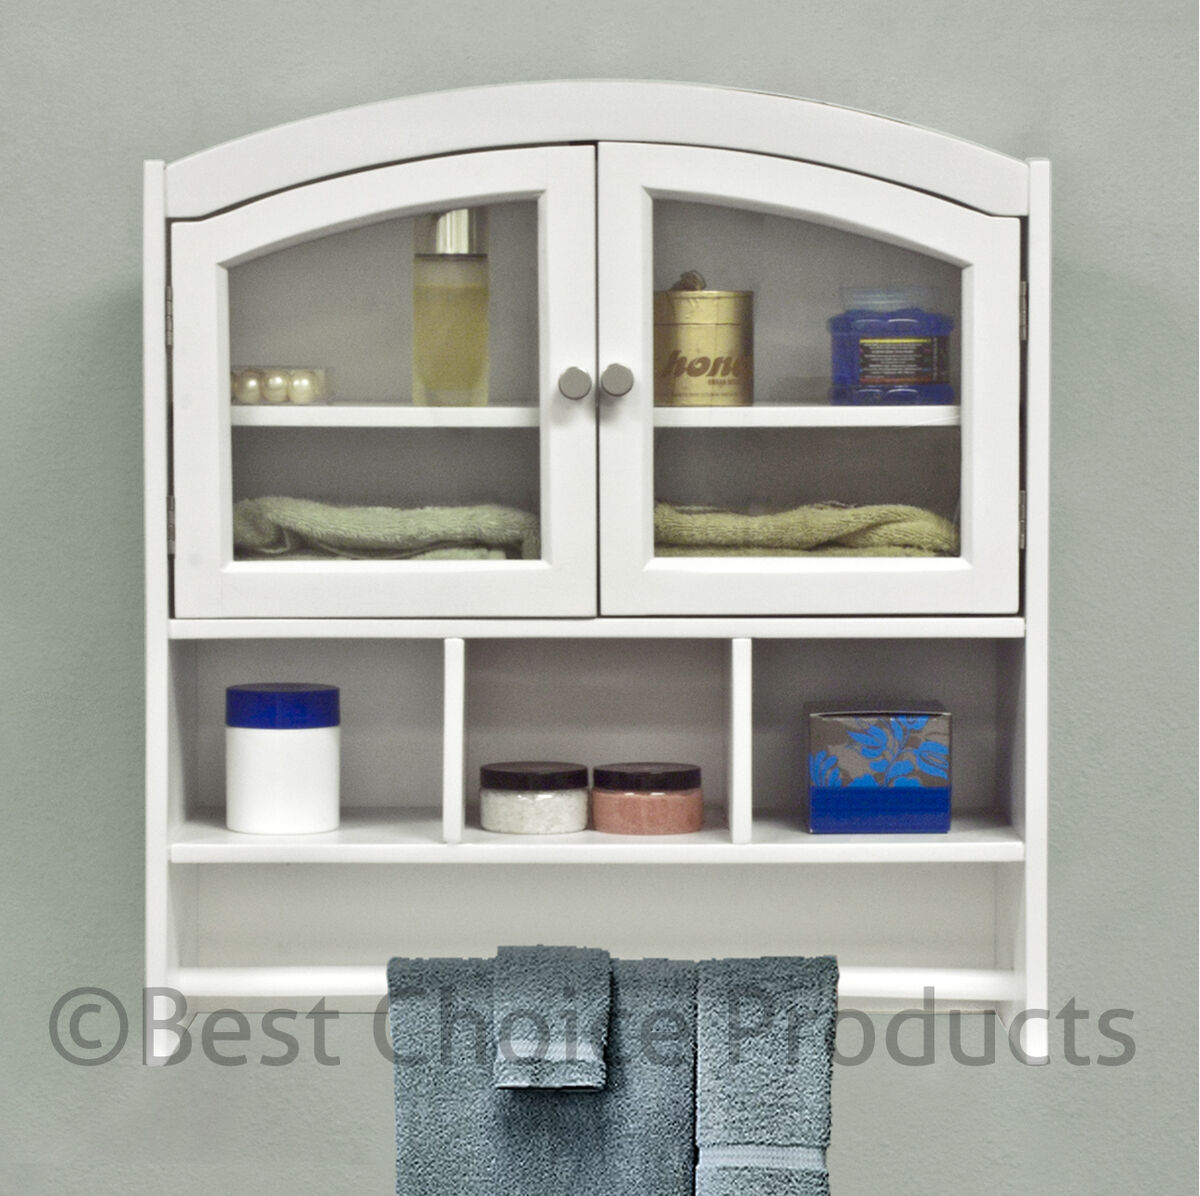 wall mounted cabinets for bathroom bathroom storage wall cabinets with image in south 28090